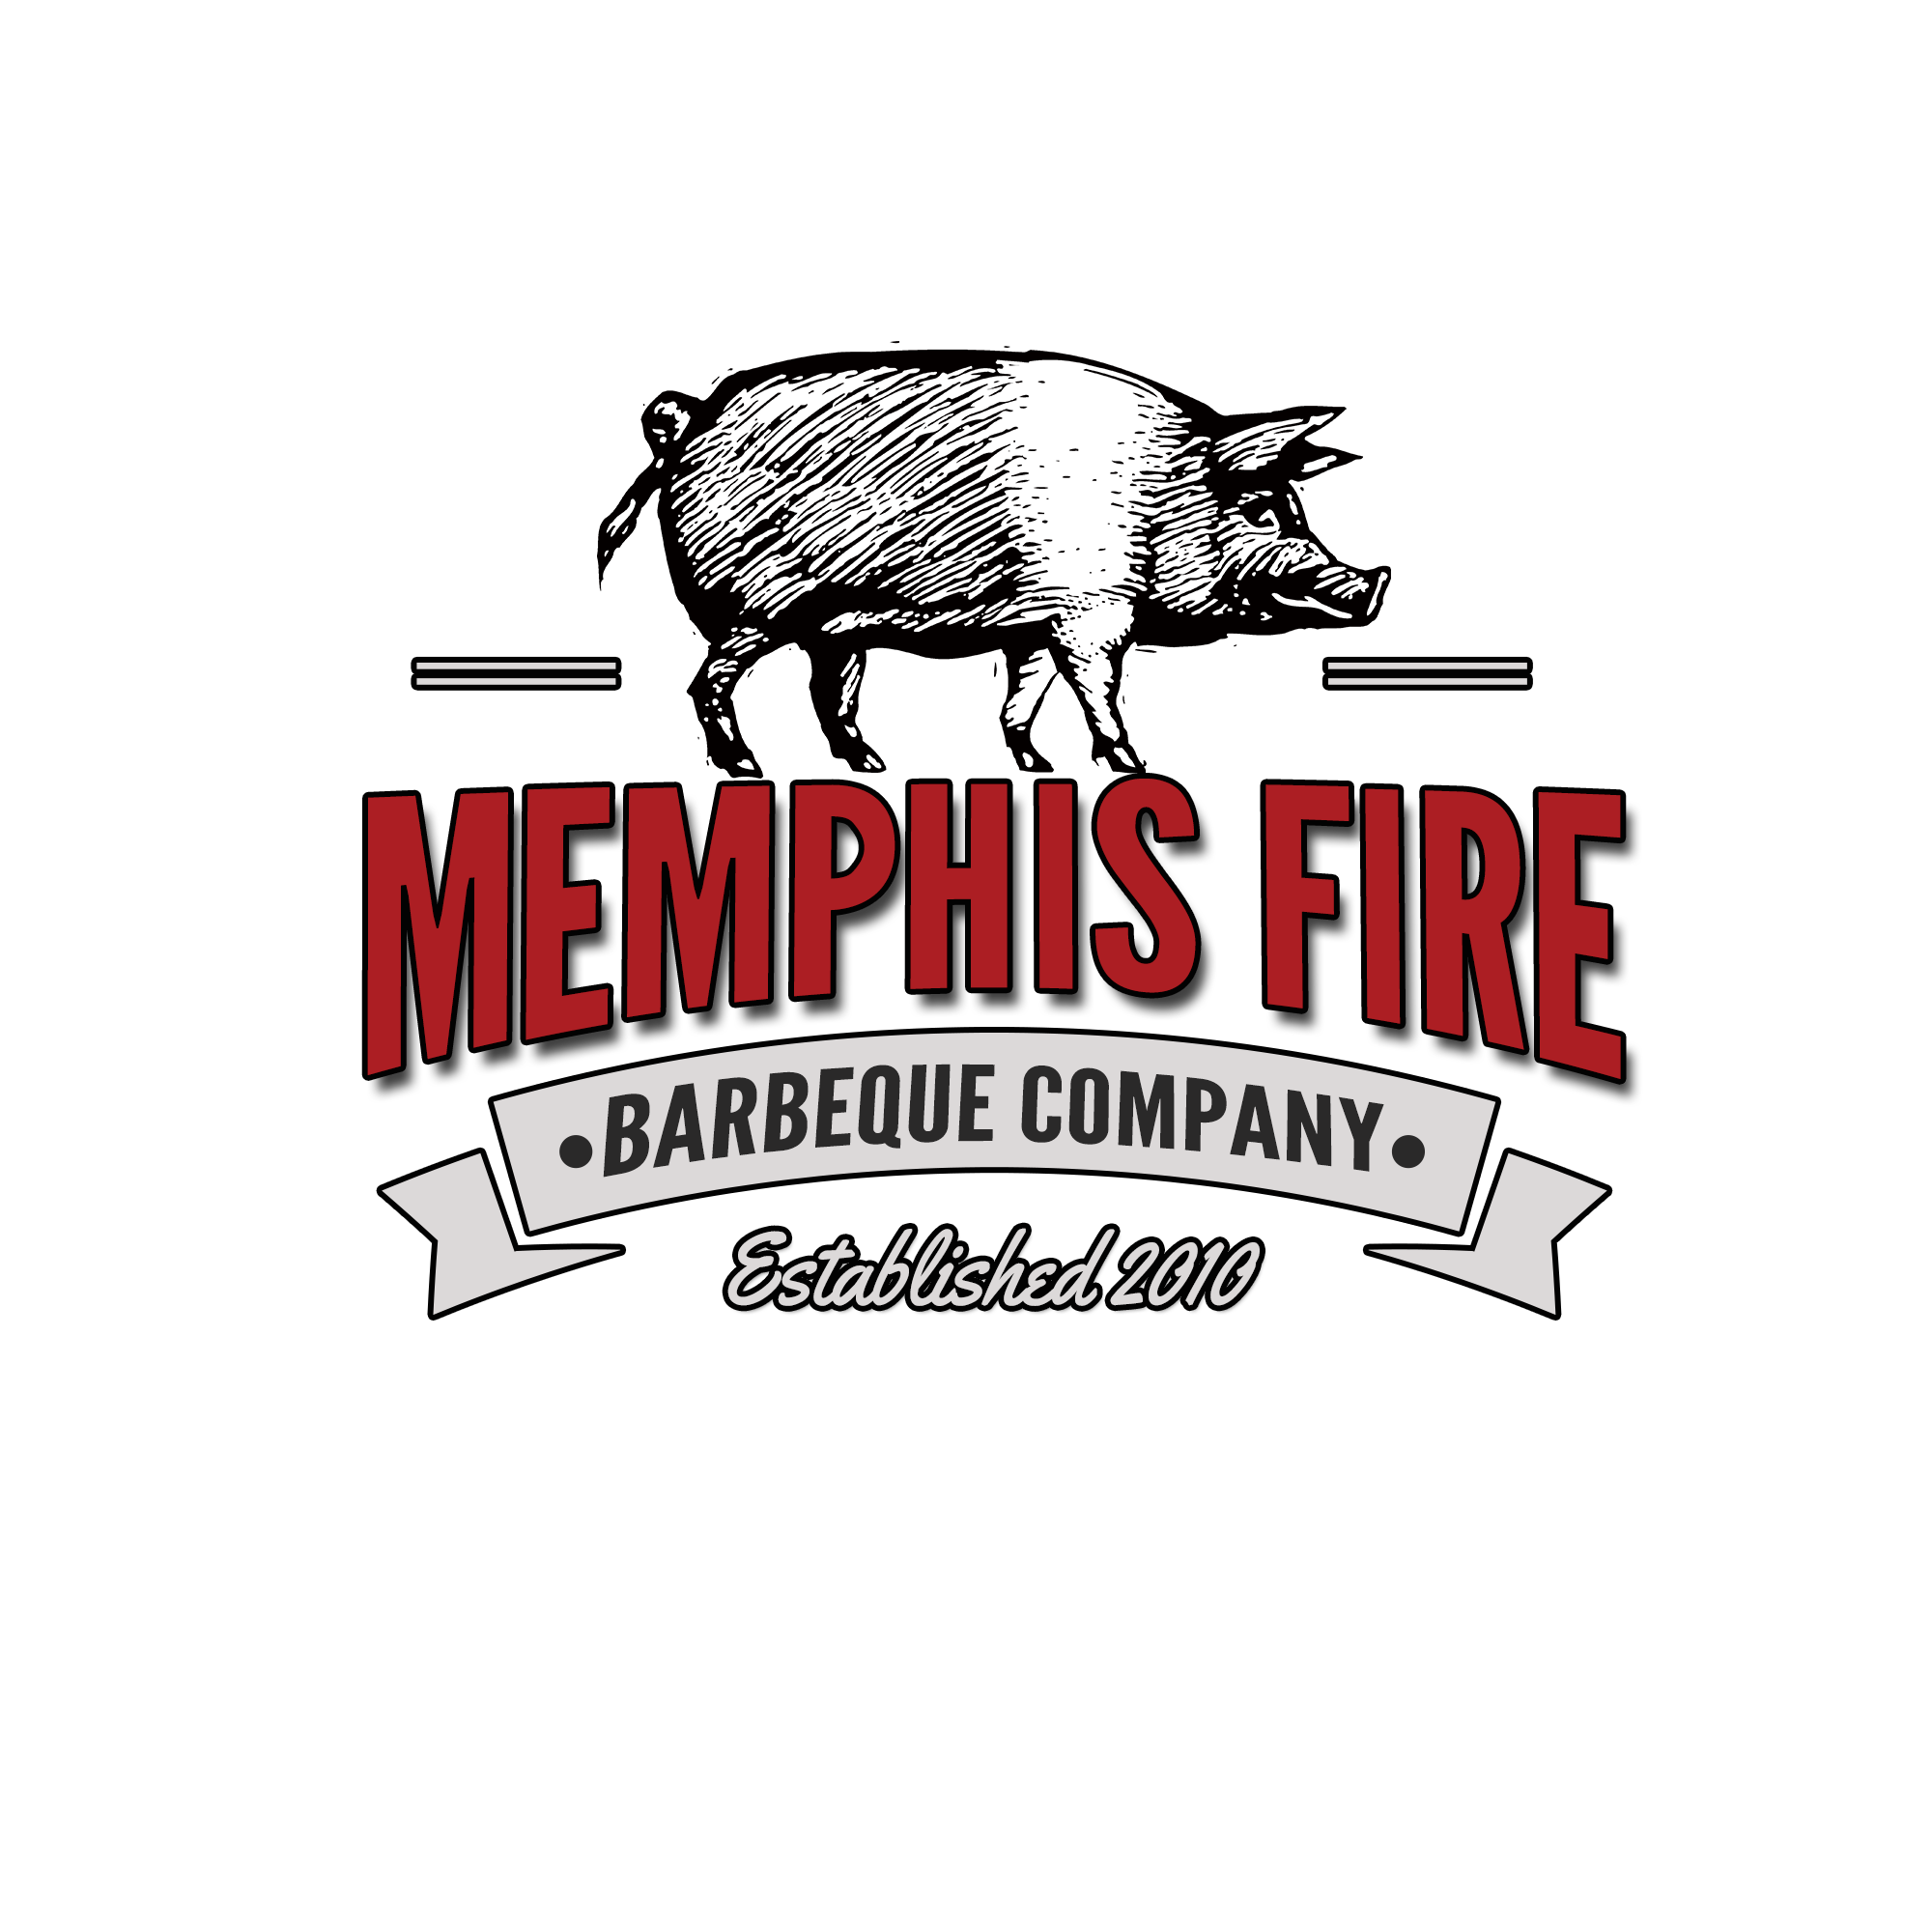 The World Memphis Fire Barbeque pany Award Winning